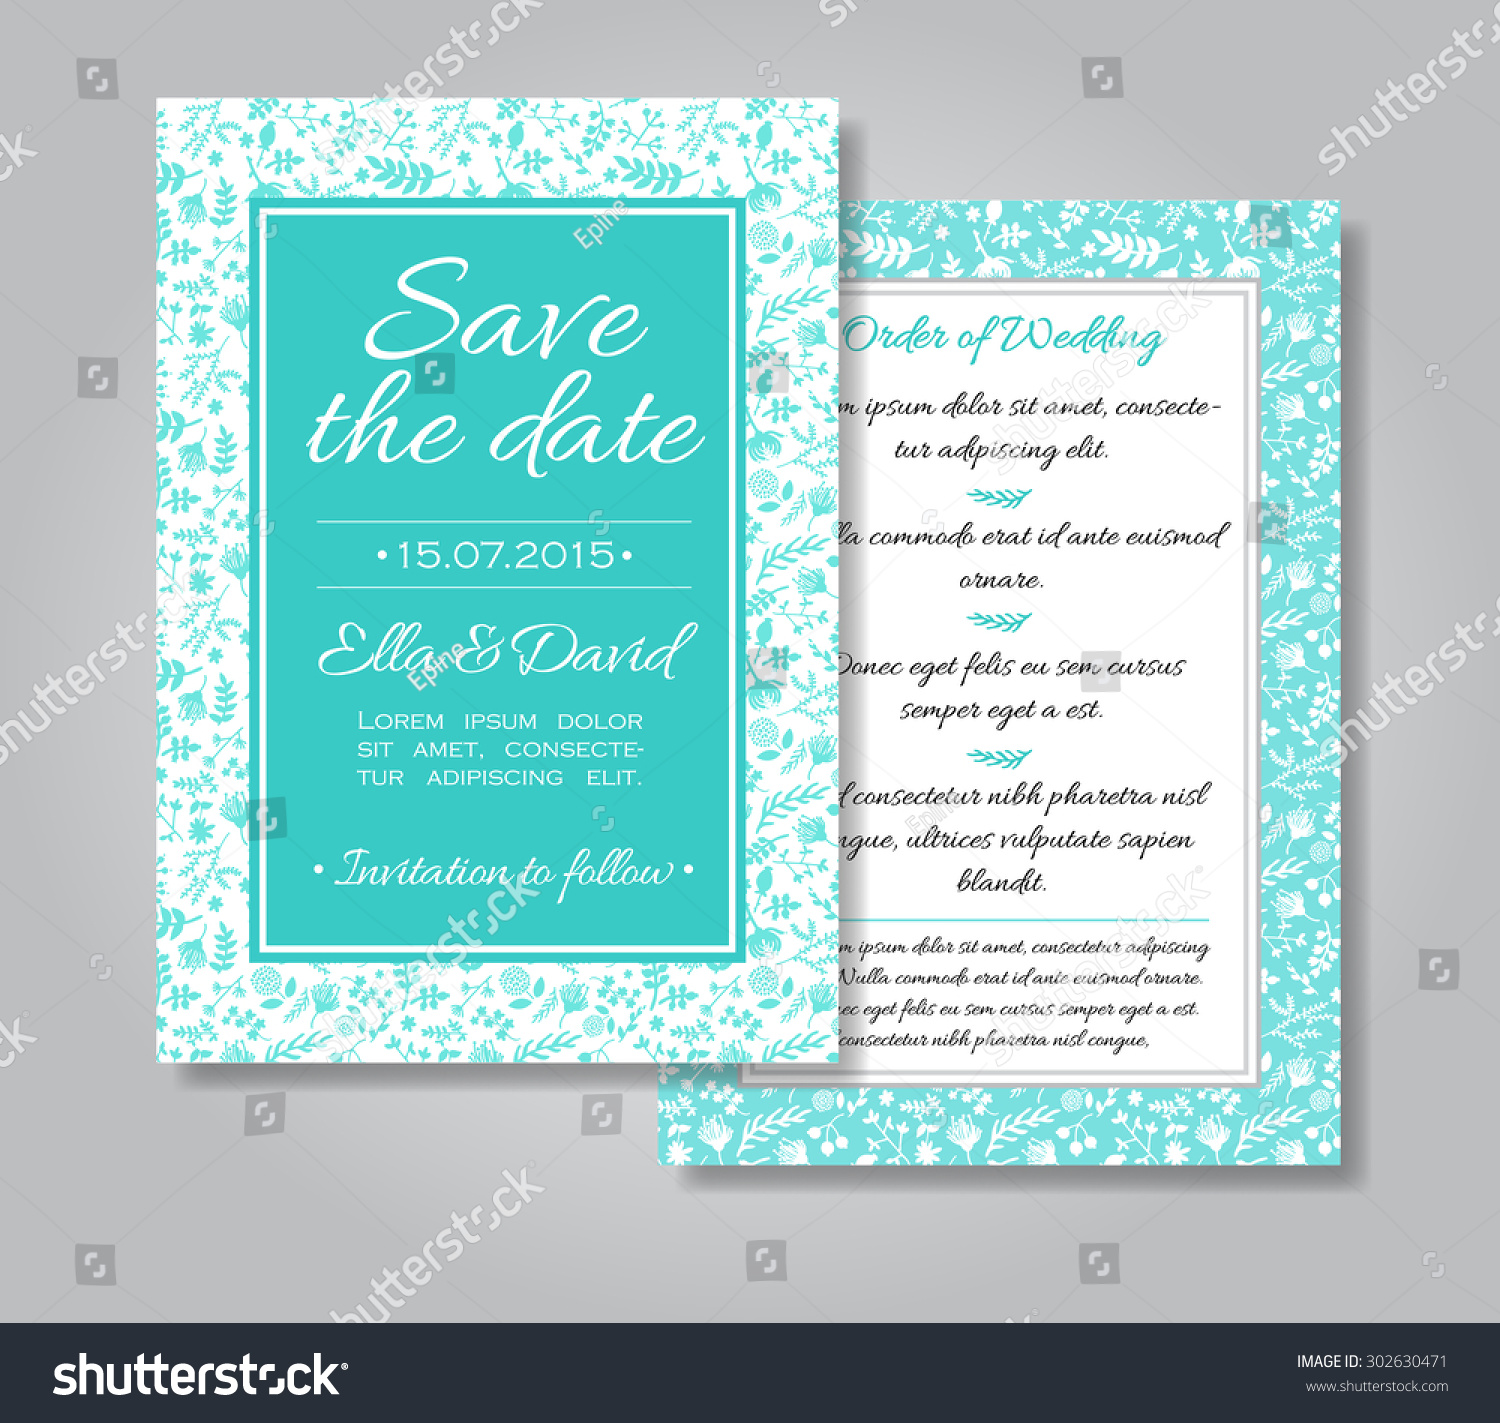 Vector wedding invitation card set with floral background in tiffany blue and white colors Template Wedding invitation or announcements Save the date and wedding order card